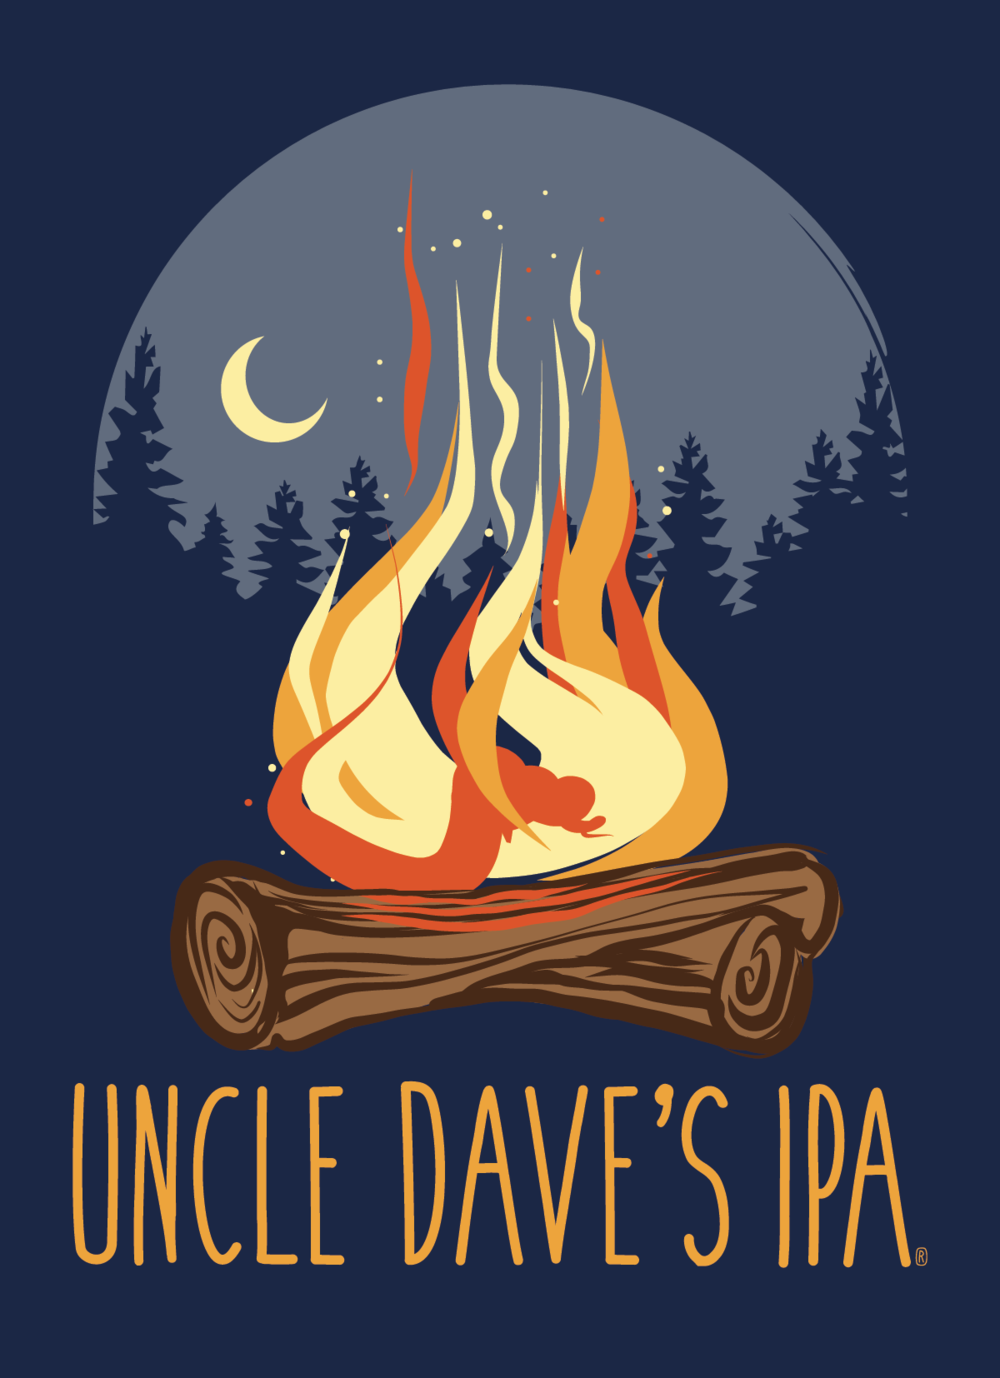 Uncle Dave's IPA